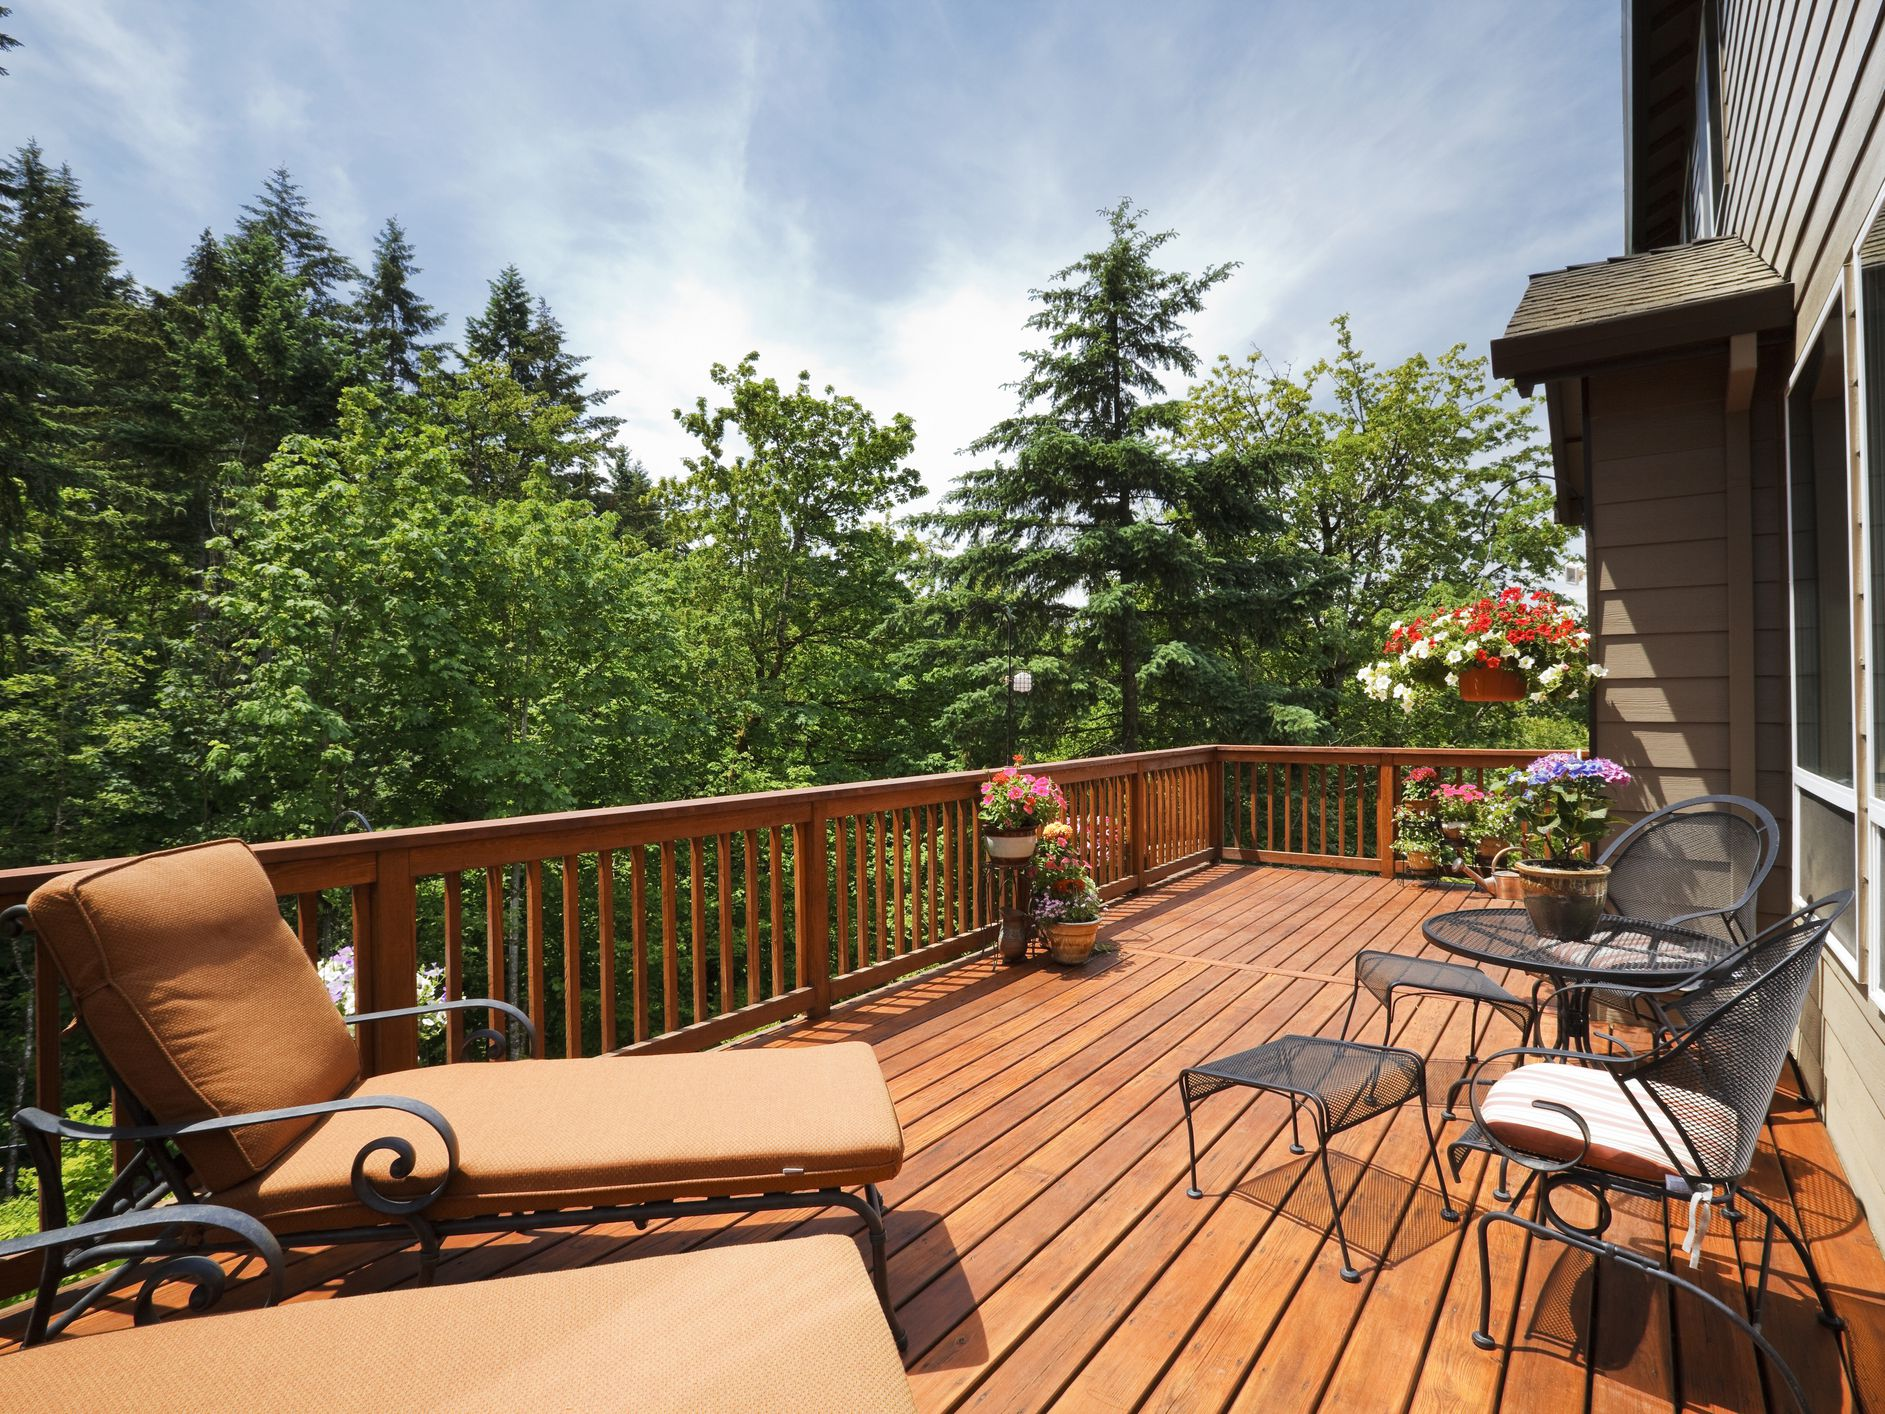 How To Seal A Deck With Thompson S Waterseal